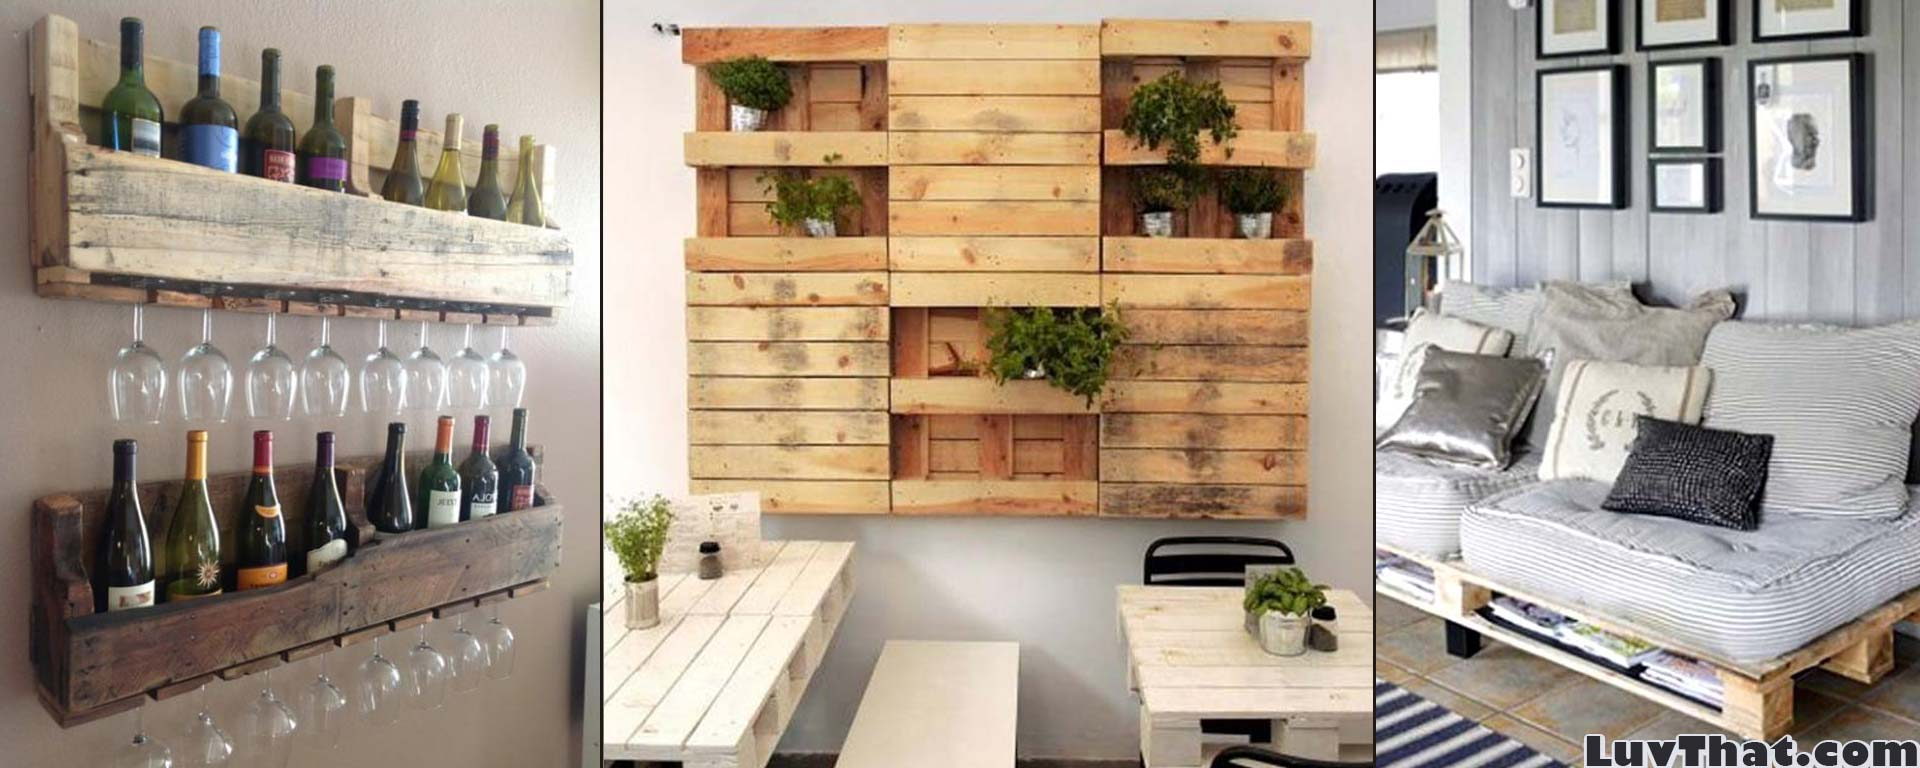 Cool Wood Pallet Furniture Ideas  LuvThat